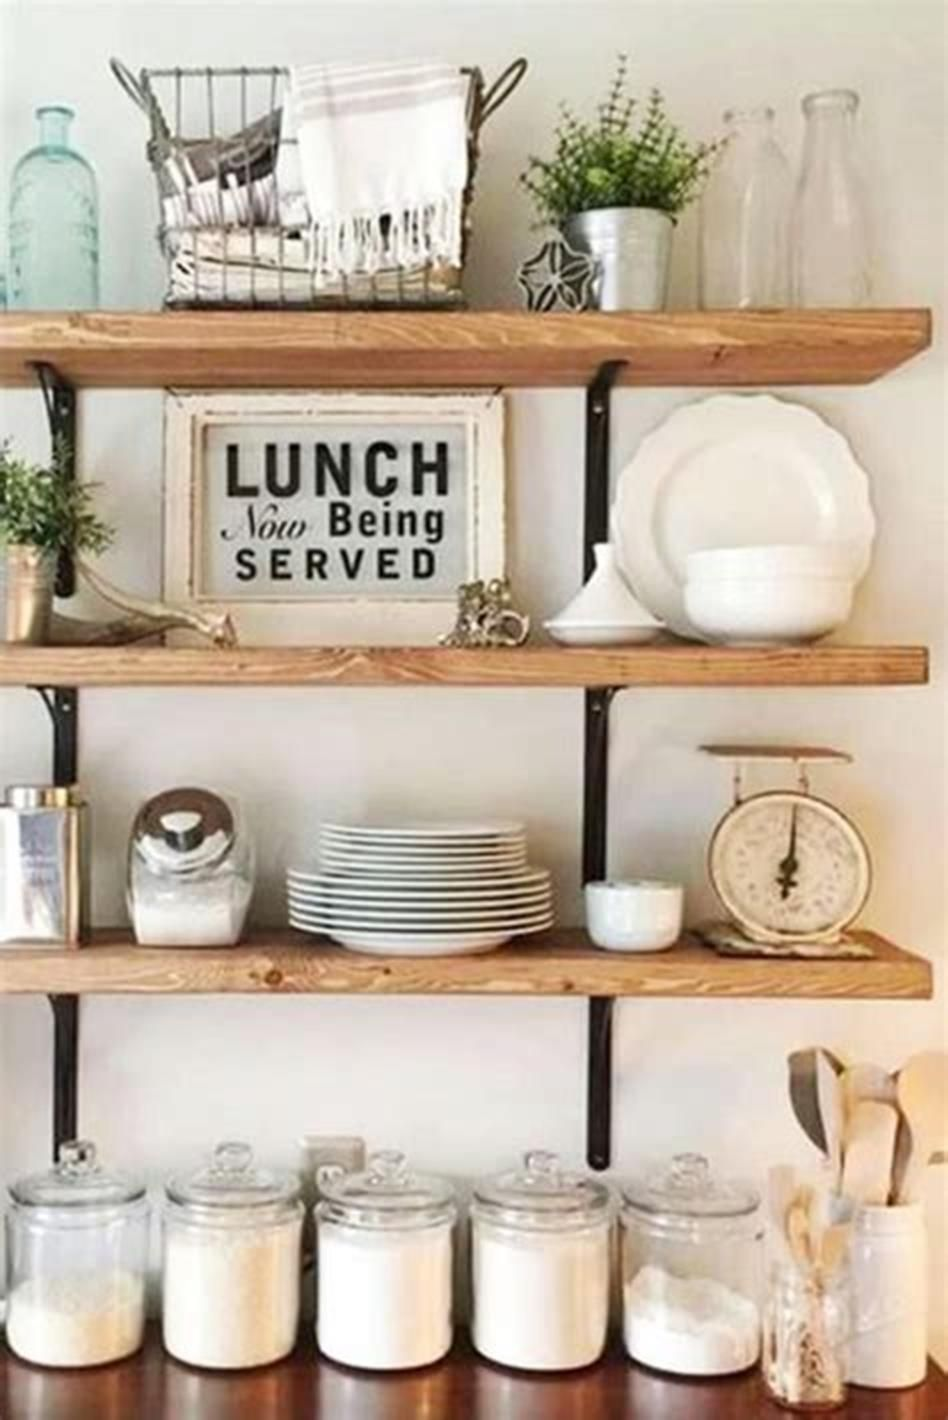 Must Know 6 Tips Kitchen Decorating Ideas On A Budget For 2019 With Images Farmhouse Kitchen Decor Diy Kitchen Decor Kitchen Inspiration Design